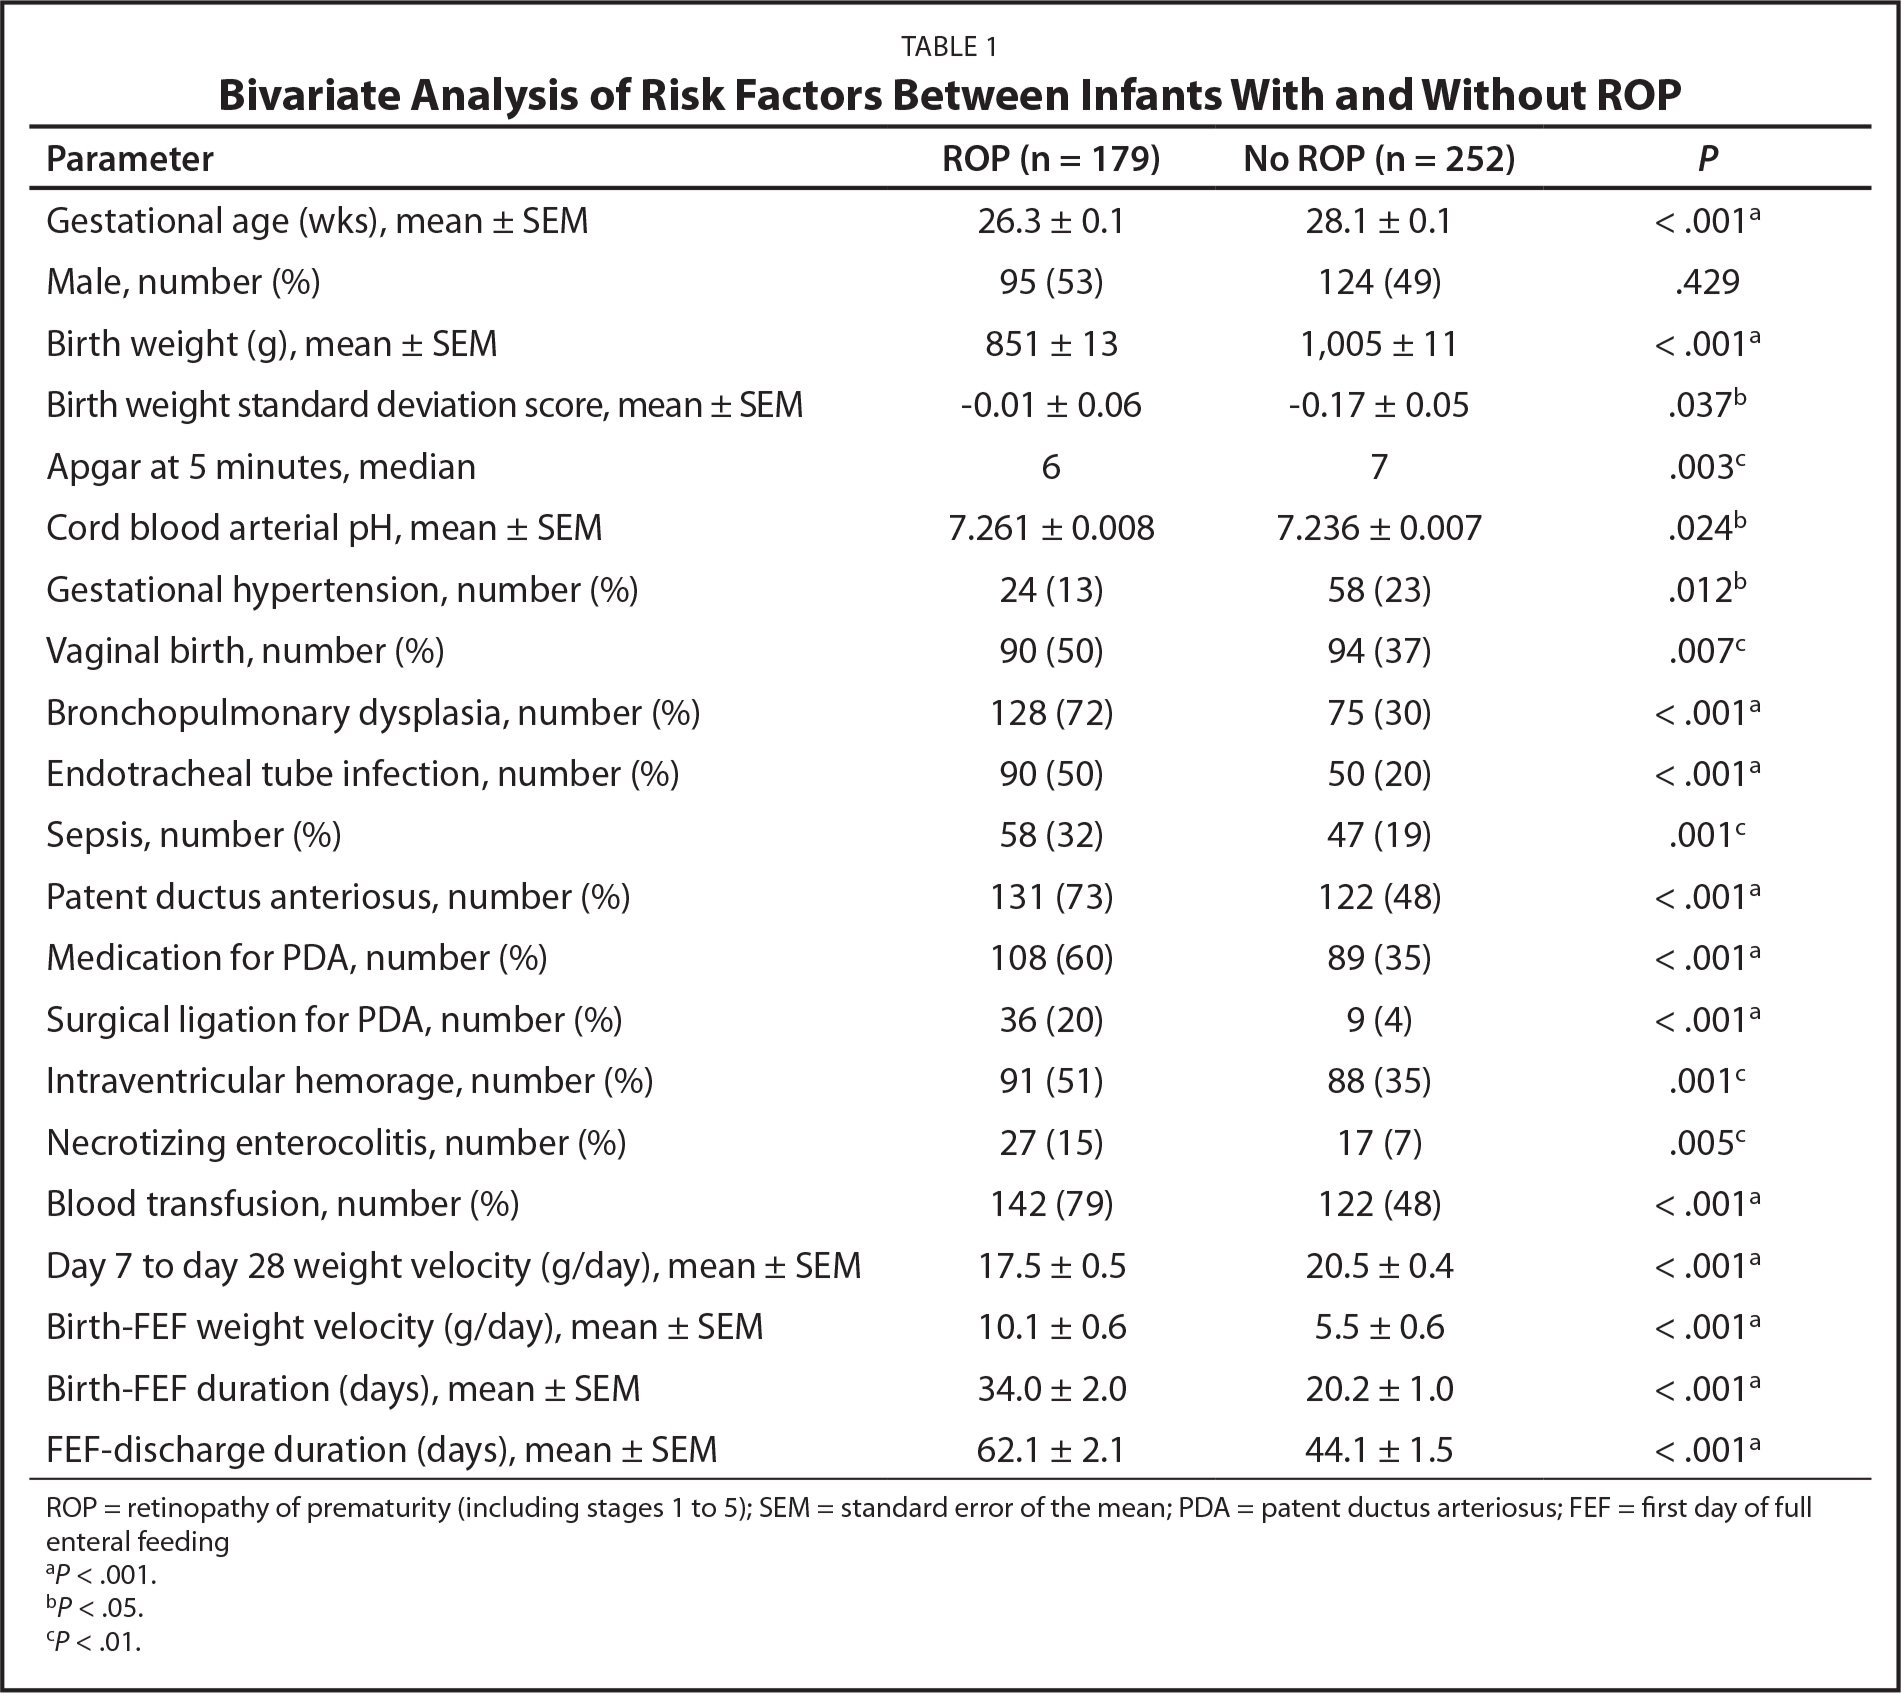 Bivariate Analysis of Risk Factors Between Infants With and Without ROP